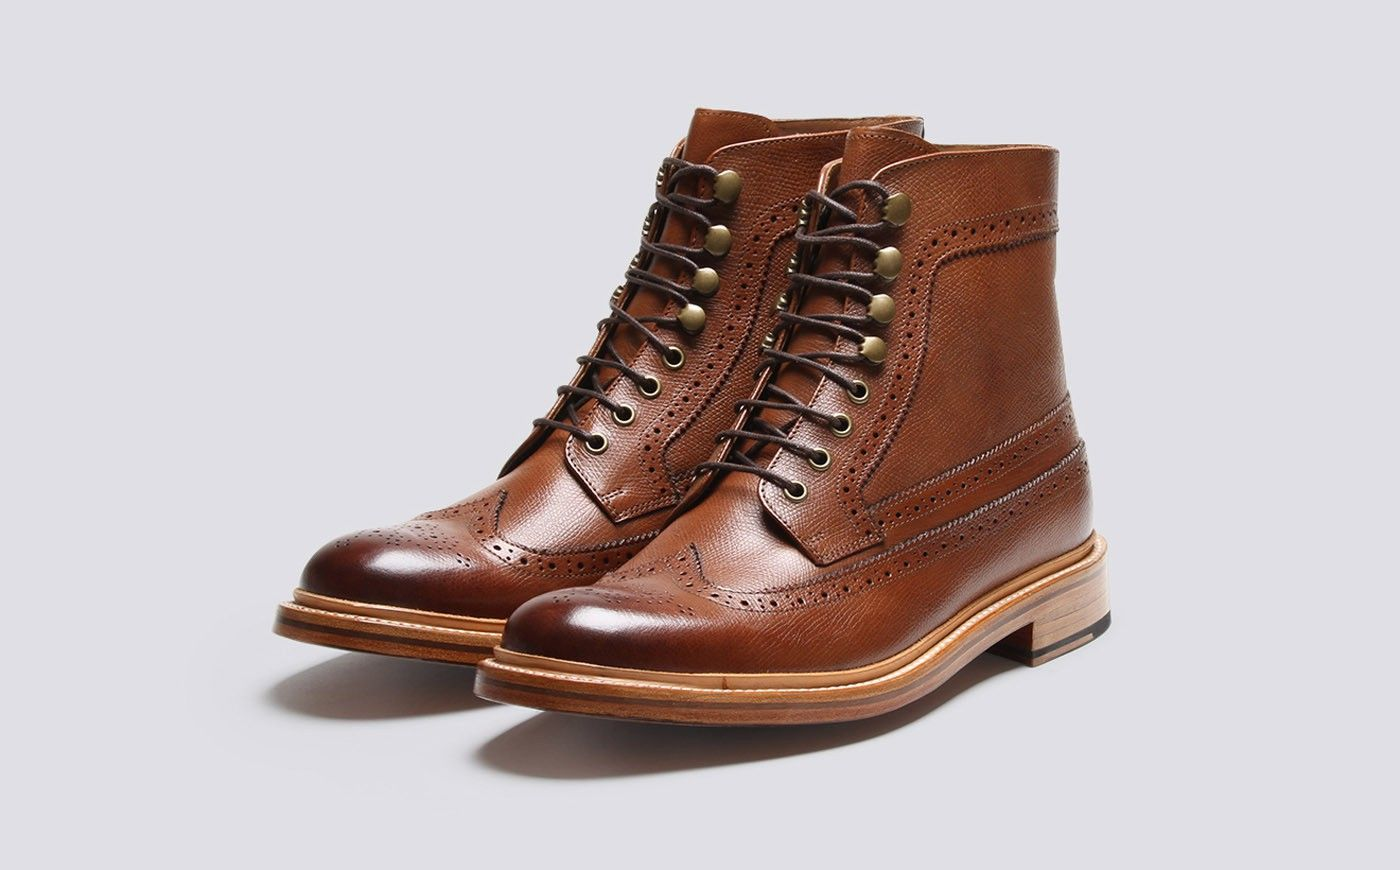 Mens Brogue Boot in Tan Alpine Grain Leather with a Leather Sole